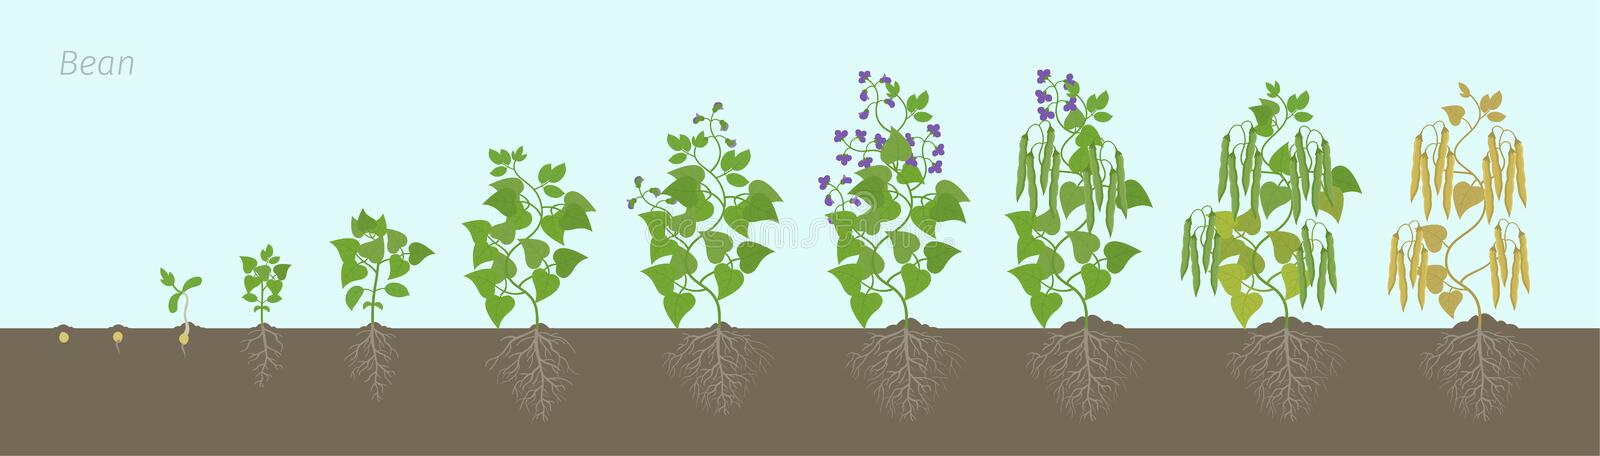 Growth stages of bean plant with roots In the soil. Bean family Fabaceae phases set ripening period. Life cycle, animation. Growth stages of bean plant with stock illustration